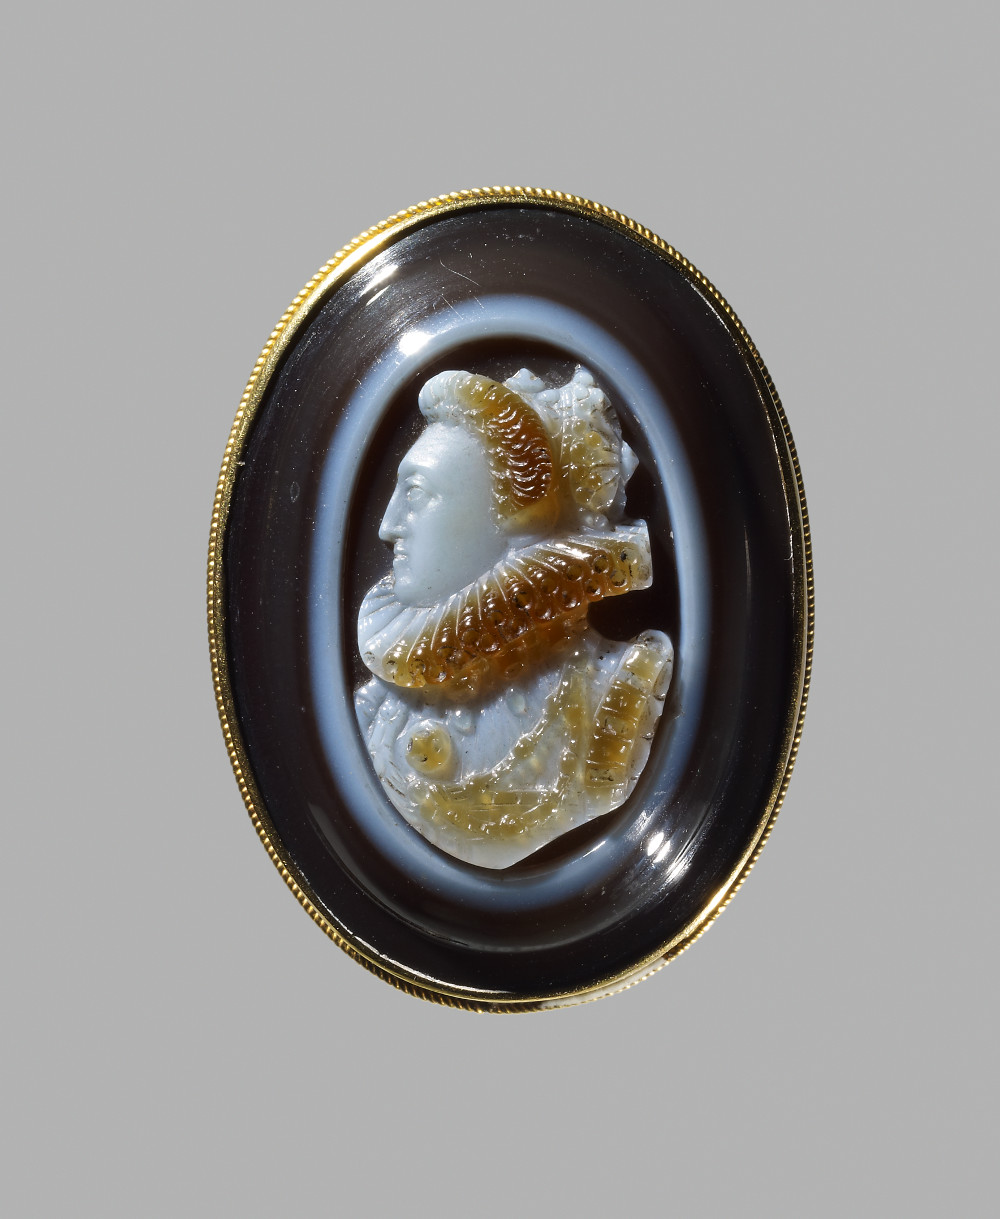 Cameo of Elizabeth I  - Gold and onyxAD 1500–1600EnglandBritish MuseumQueen Elizabeth I (1558–1603) was the last reigning monarch of the Tudor dynasty, which ruled England, Wales and Ireland from 1485. Shown facing left and wearing a crown, this jewel is one of the finest cameo portraits of the Queen. Cameos such as this were given as presents from the Queen to important members of her court or foreign dignitaries. It is made of onyx, a precious material imported to Europe.